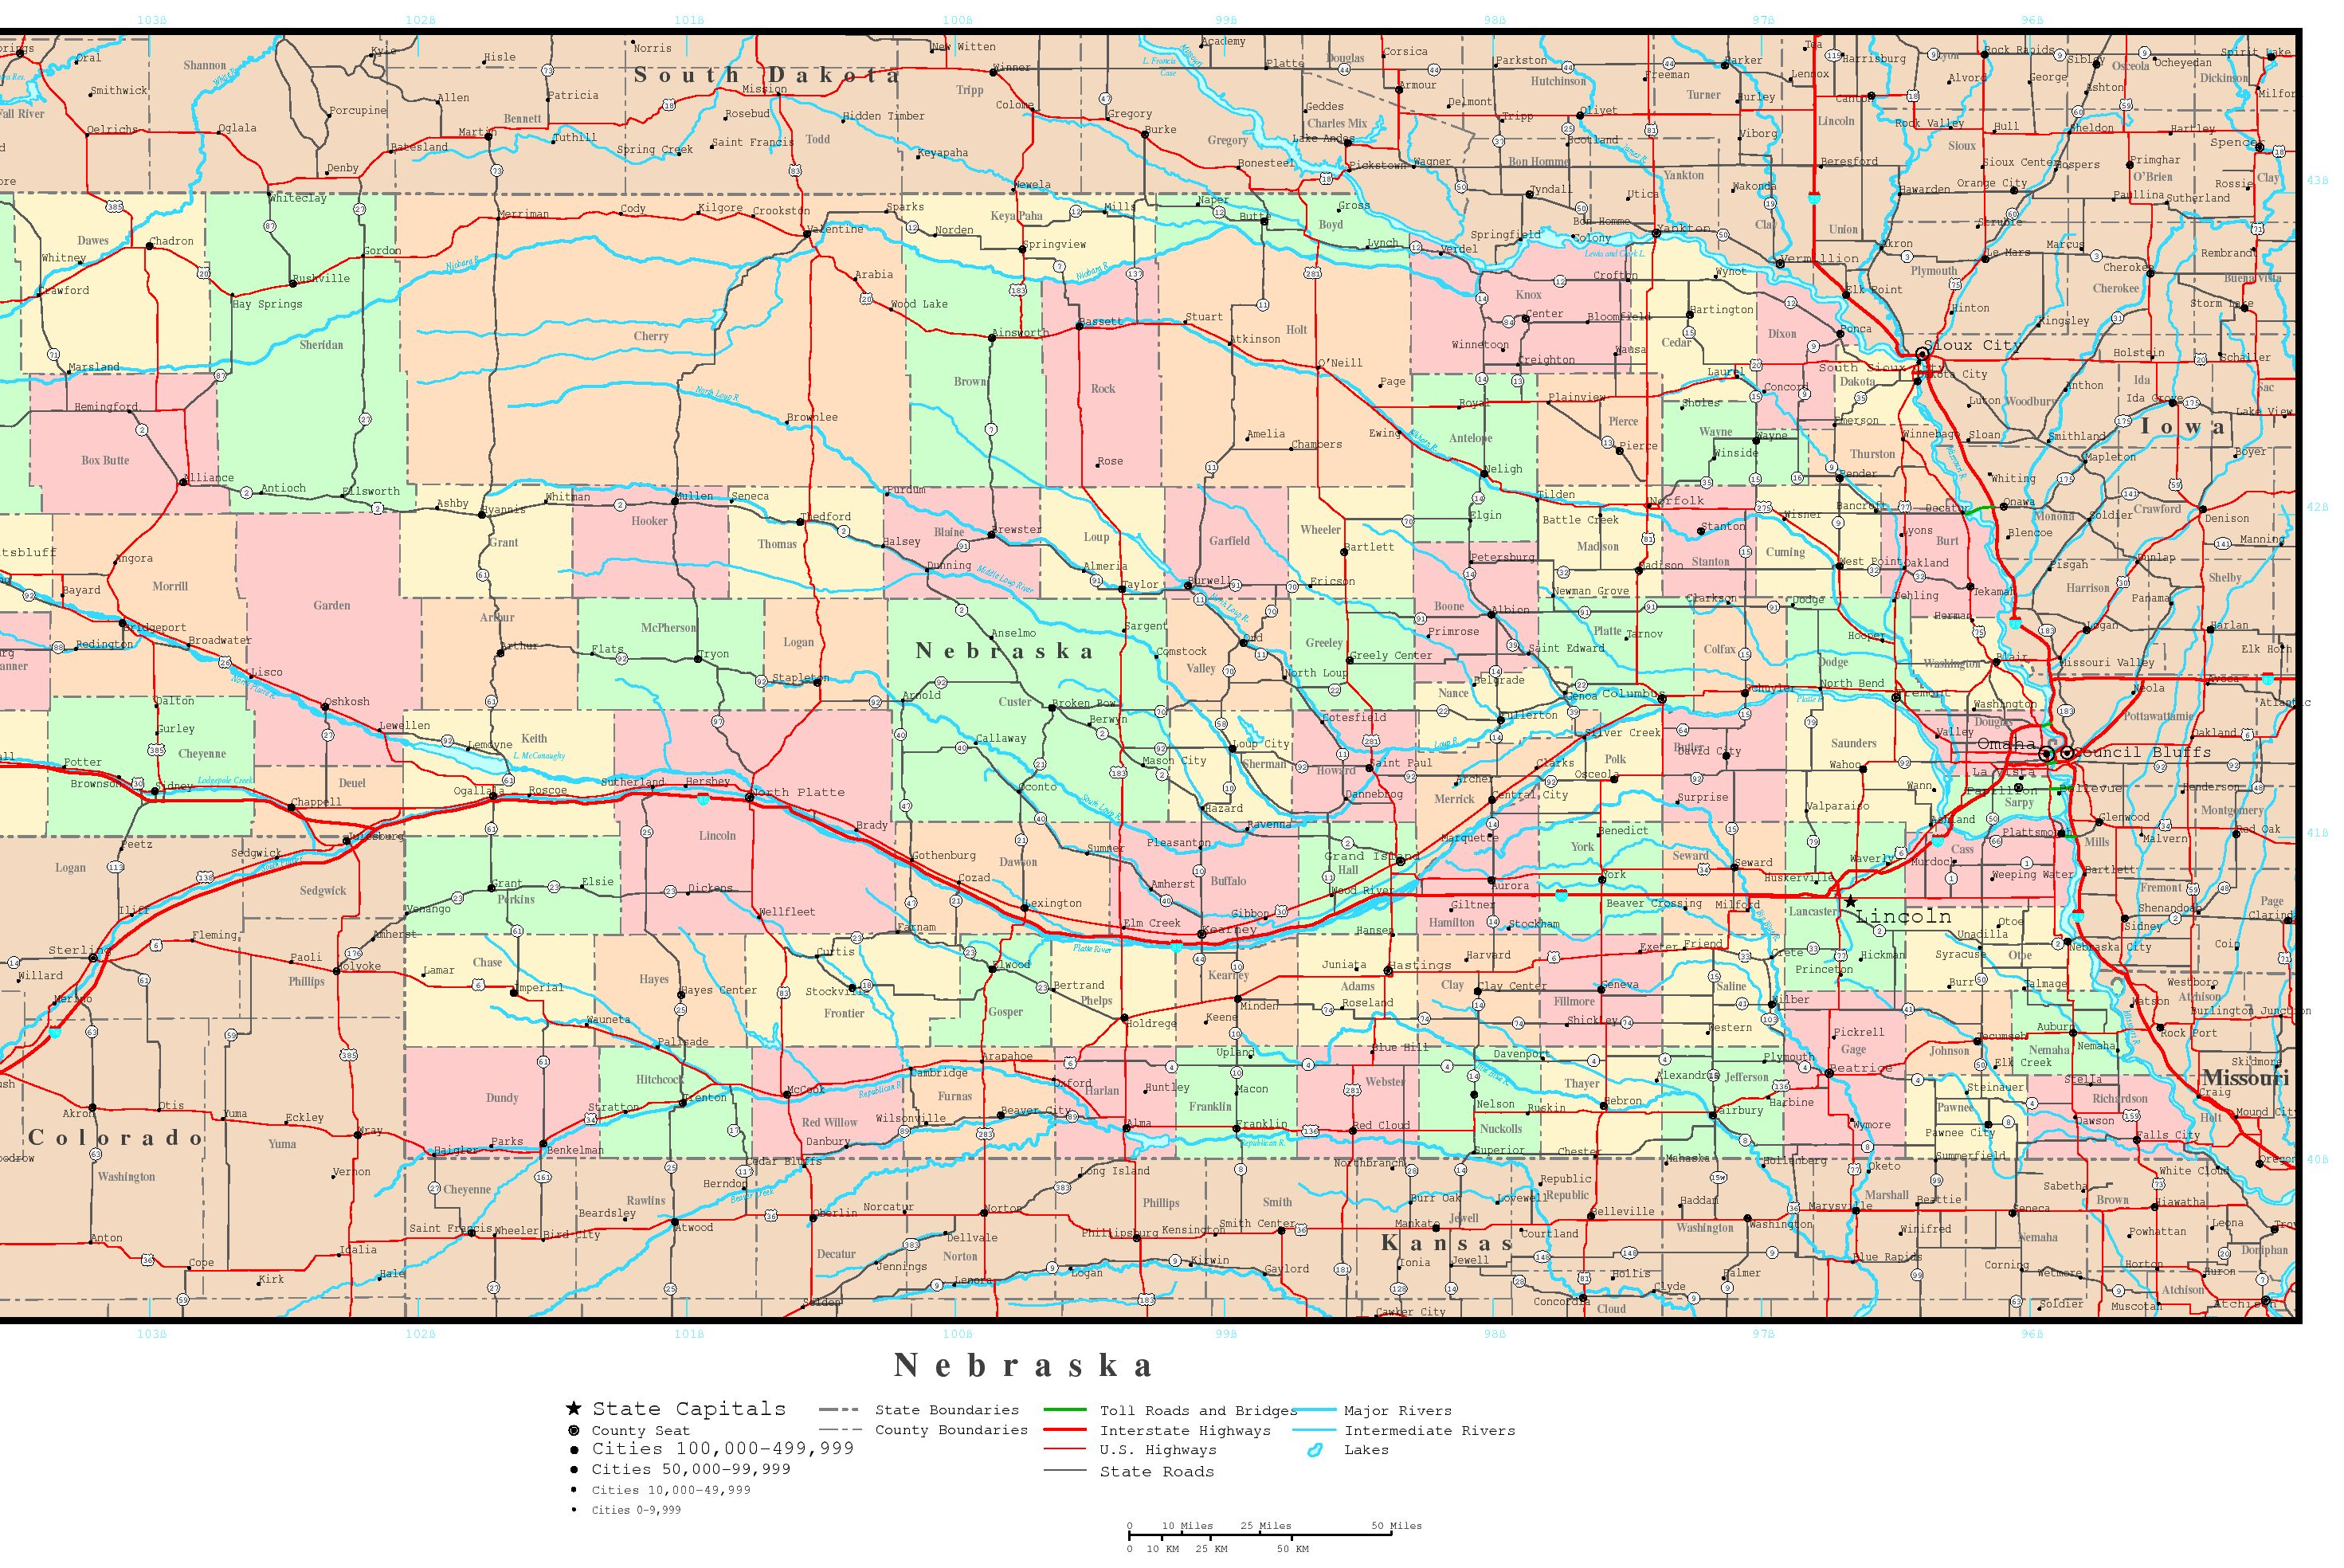 Nebraska Political Map - Nebraska on us map